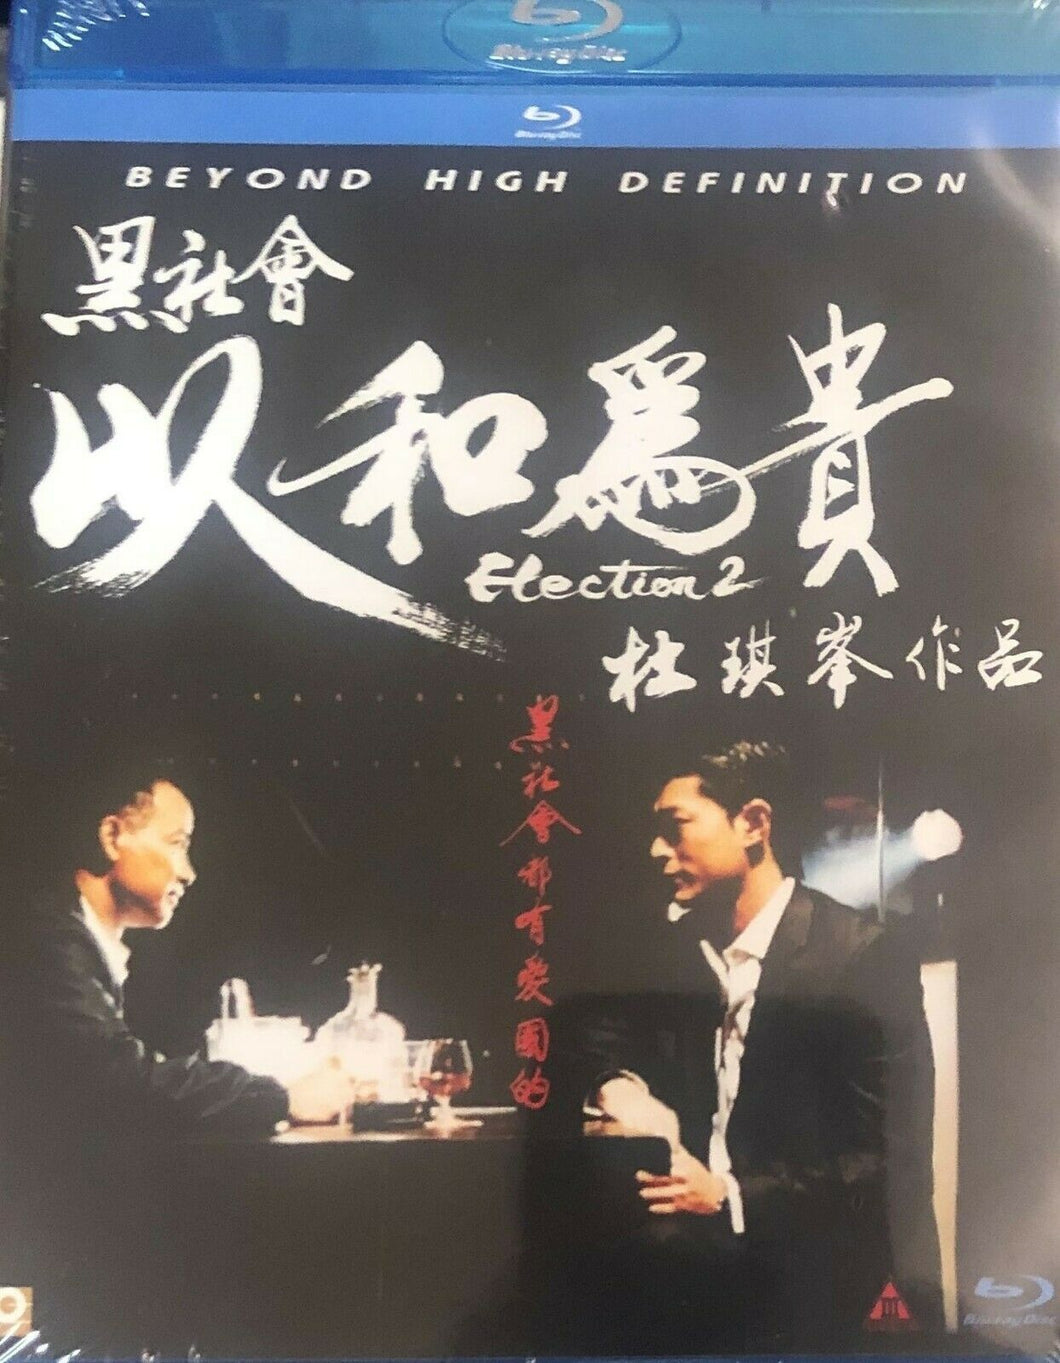 Election 2黑社會2 2006 (Hong Kong Movie) BLU-RAY with English Subtitles (Region Free)